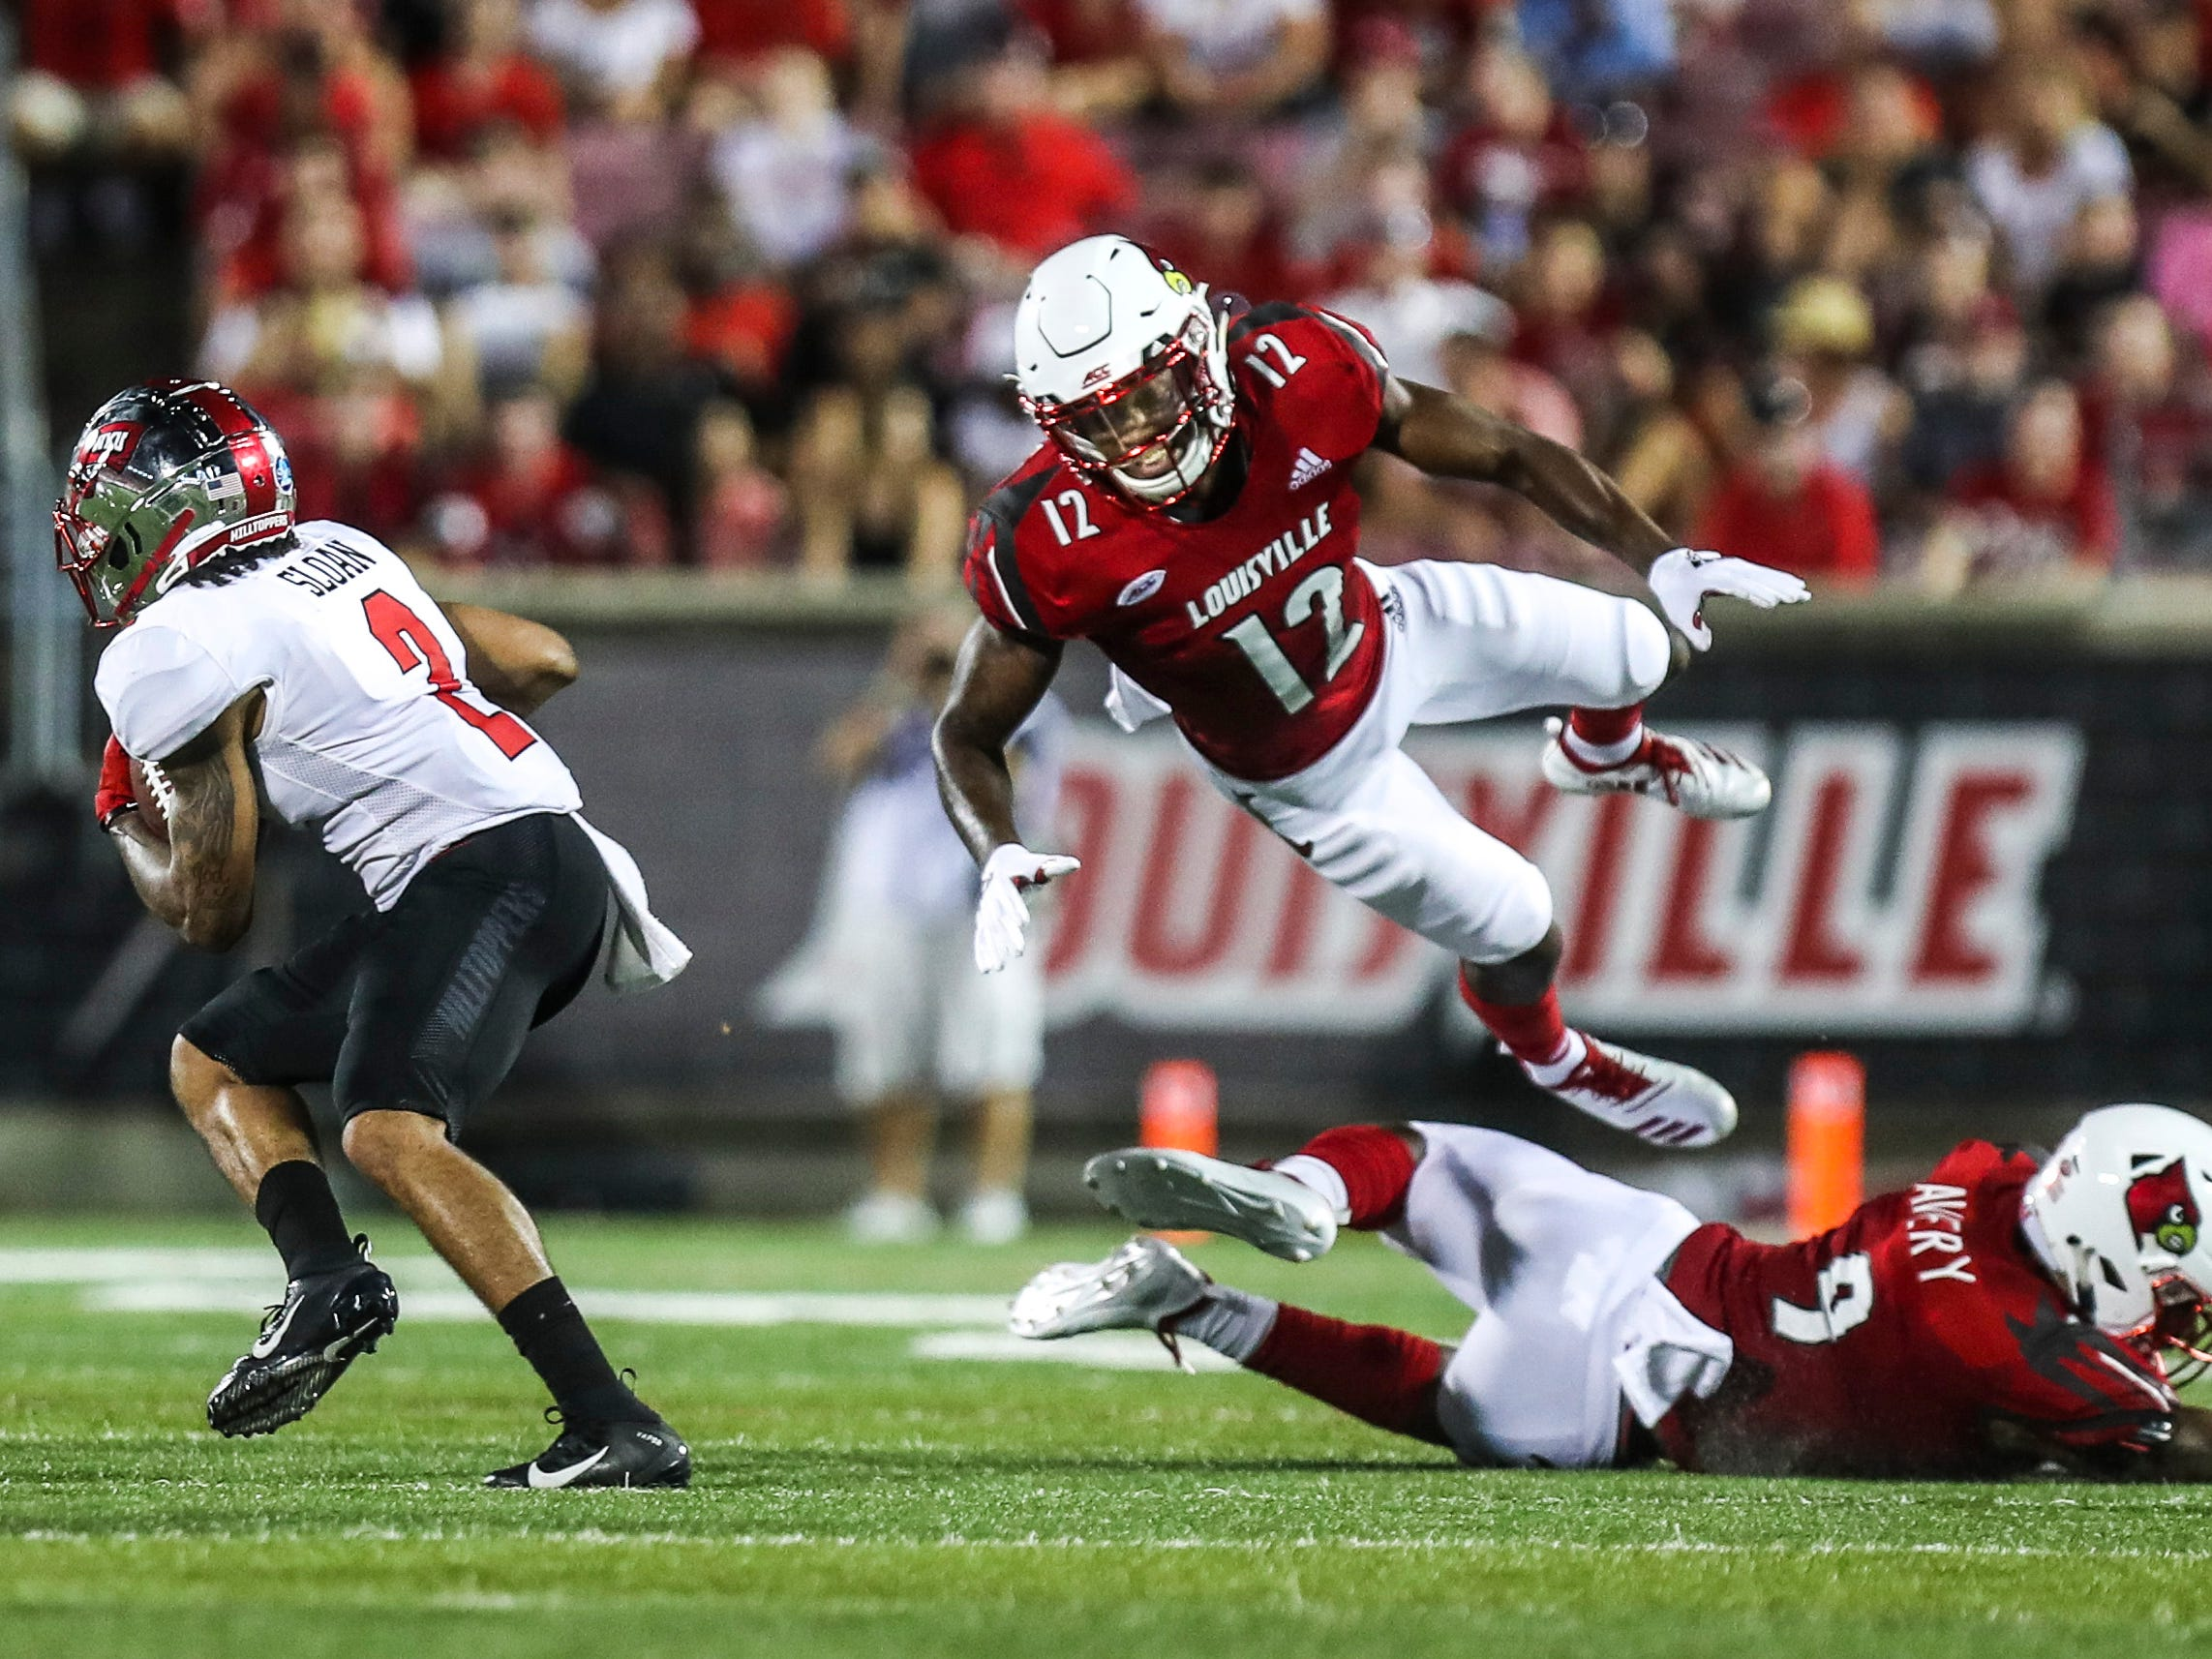 Western Kentucky's Jacquez Sloan outjukes  Louisville's Marlon Character as the Toppers went up 14-0 on the Cardinals Saturday, Sept. 15, 2018.